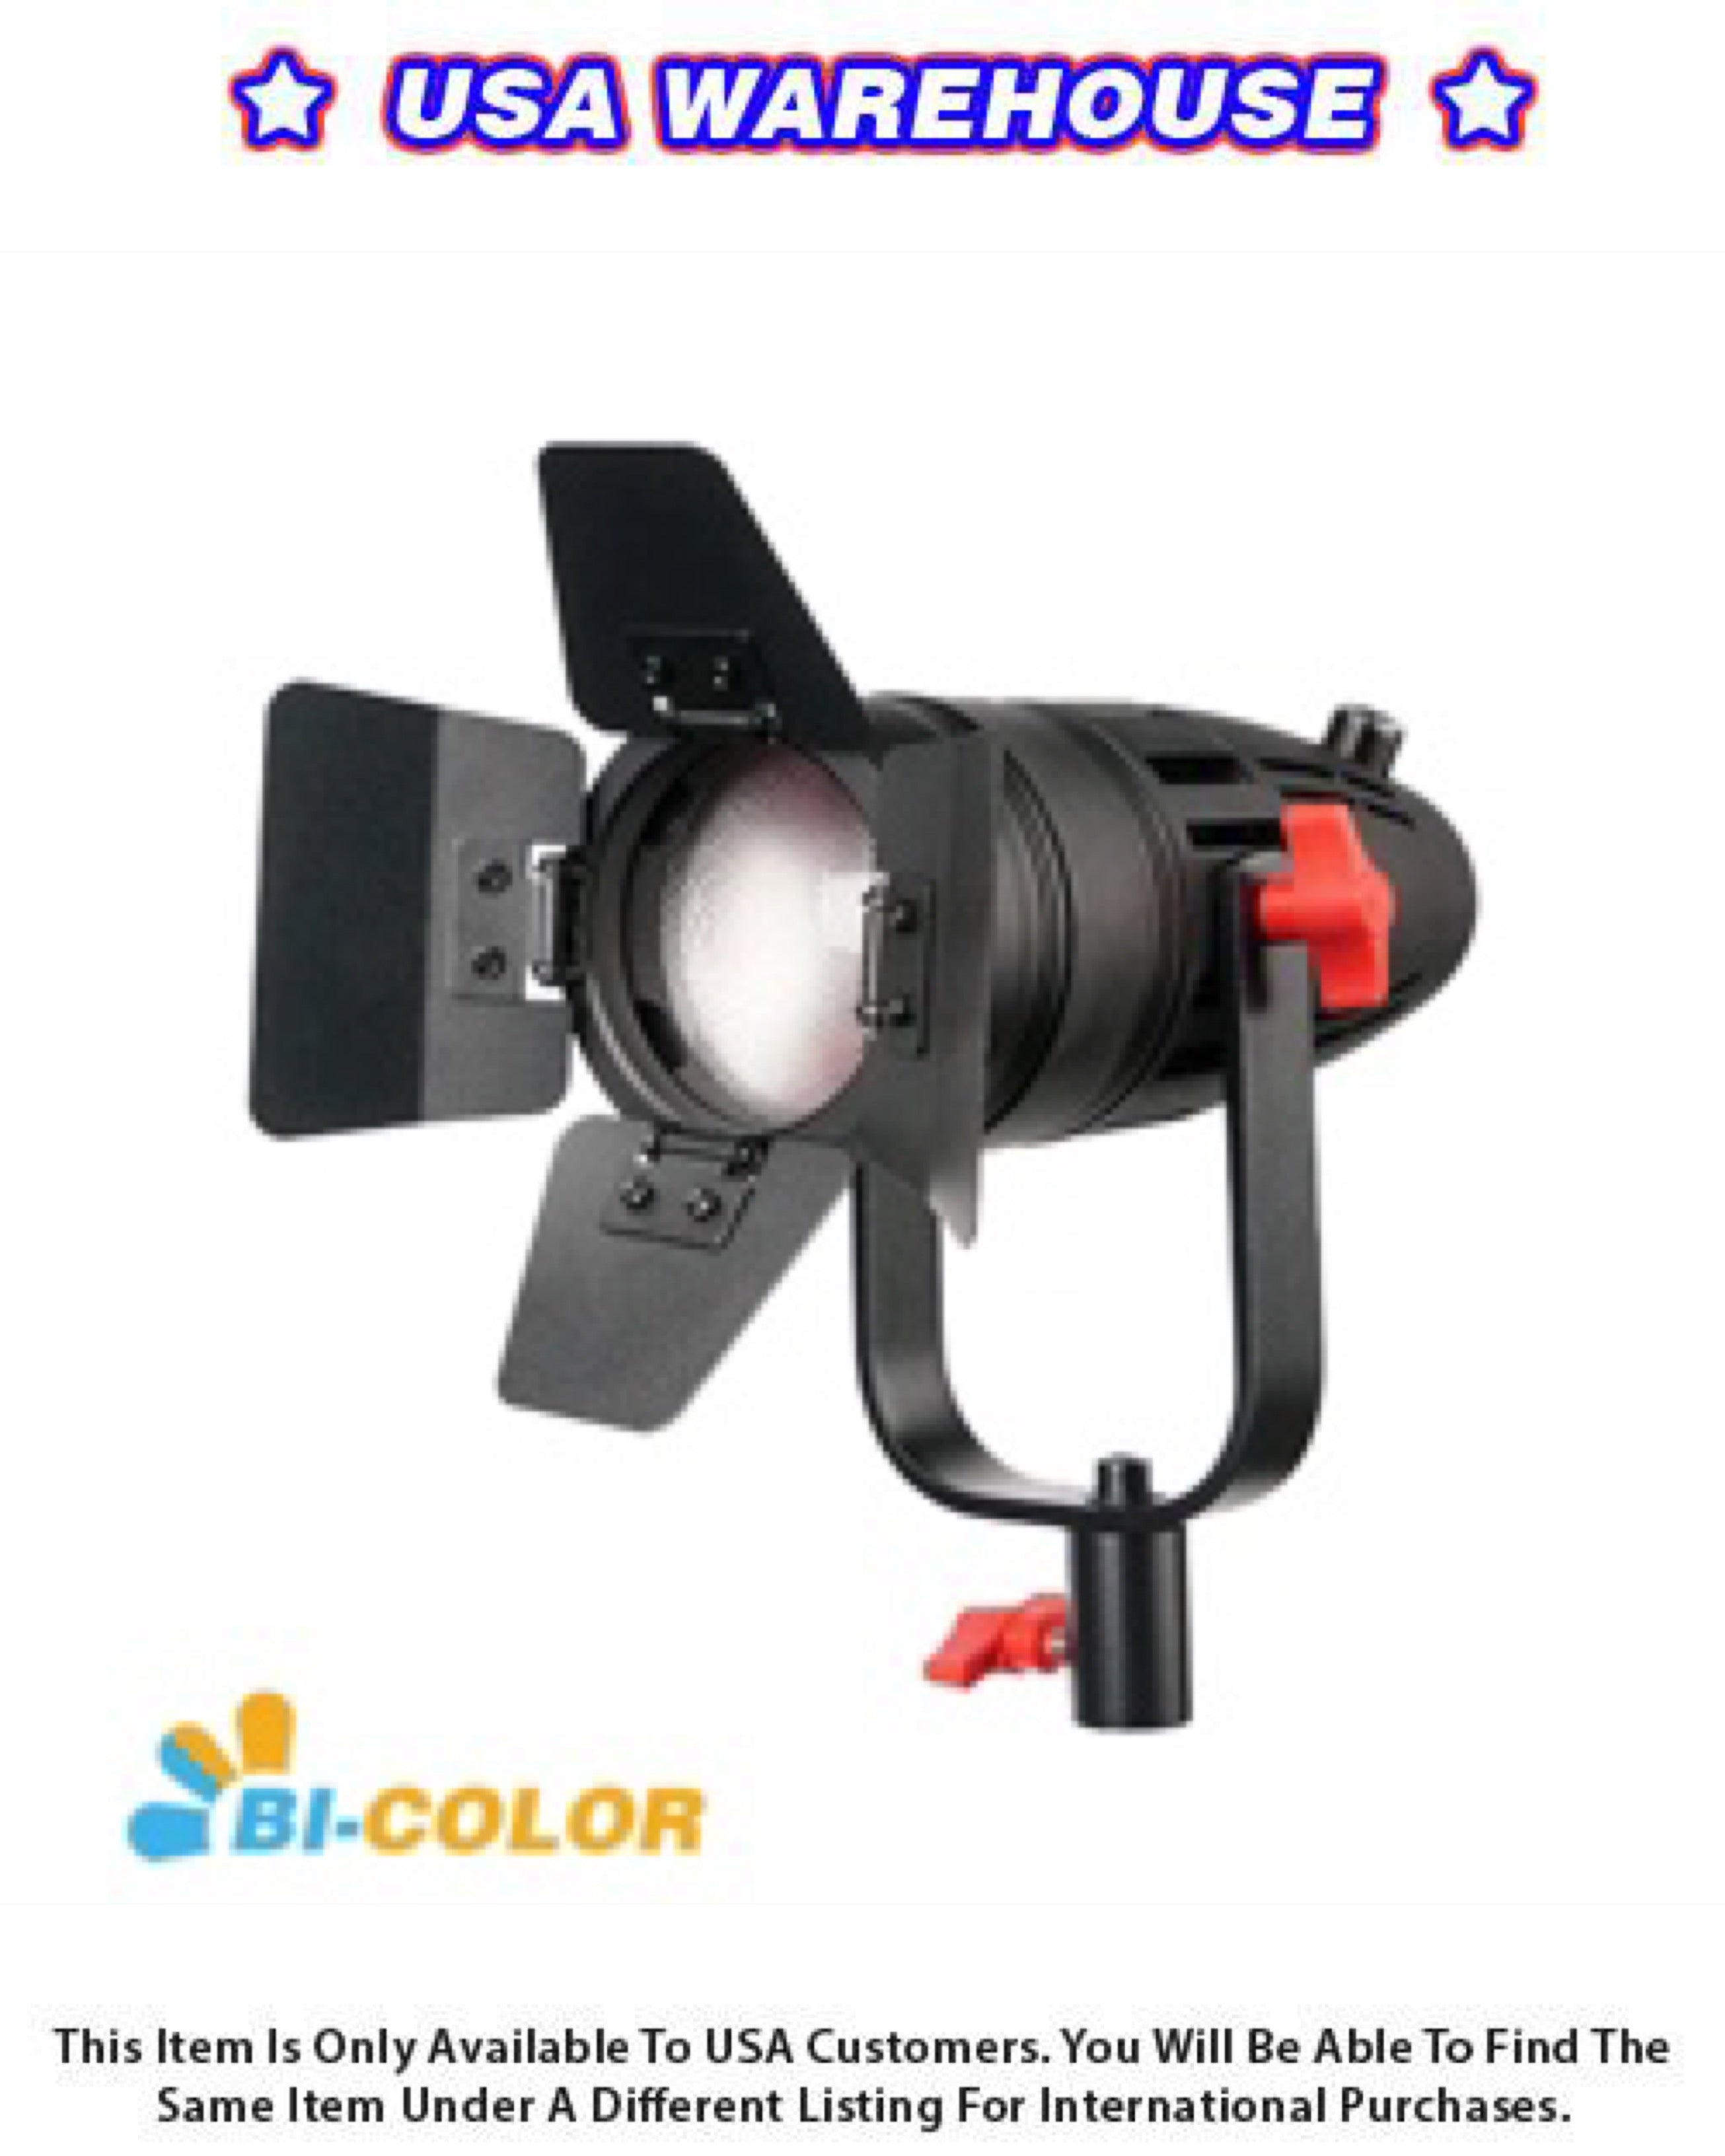 CAME-TV Boltzen 30w Fresnel Fanless Focusable LED Bi-Color 5800 Lux@1m - USA Warehouse